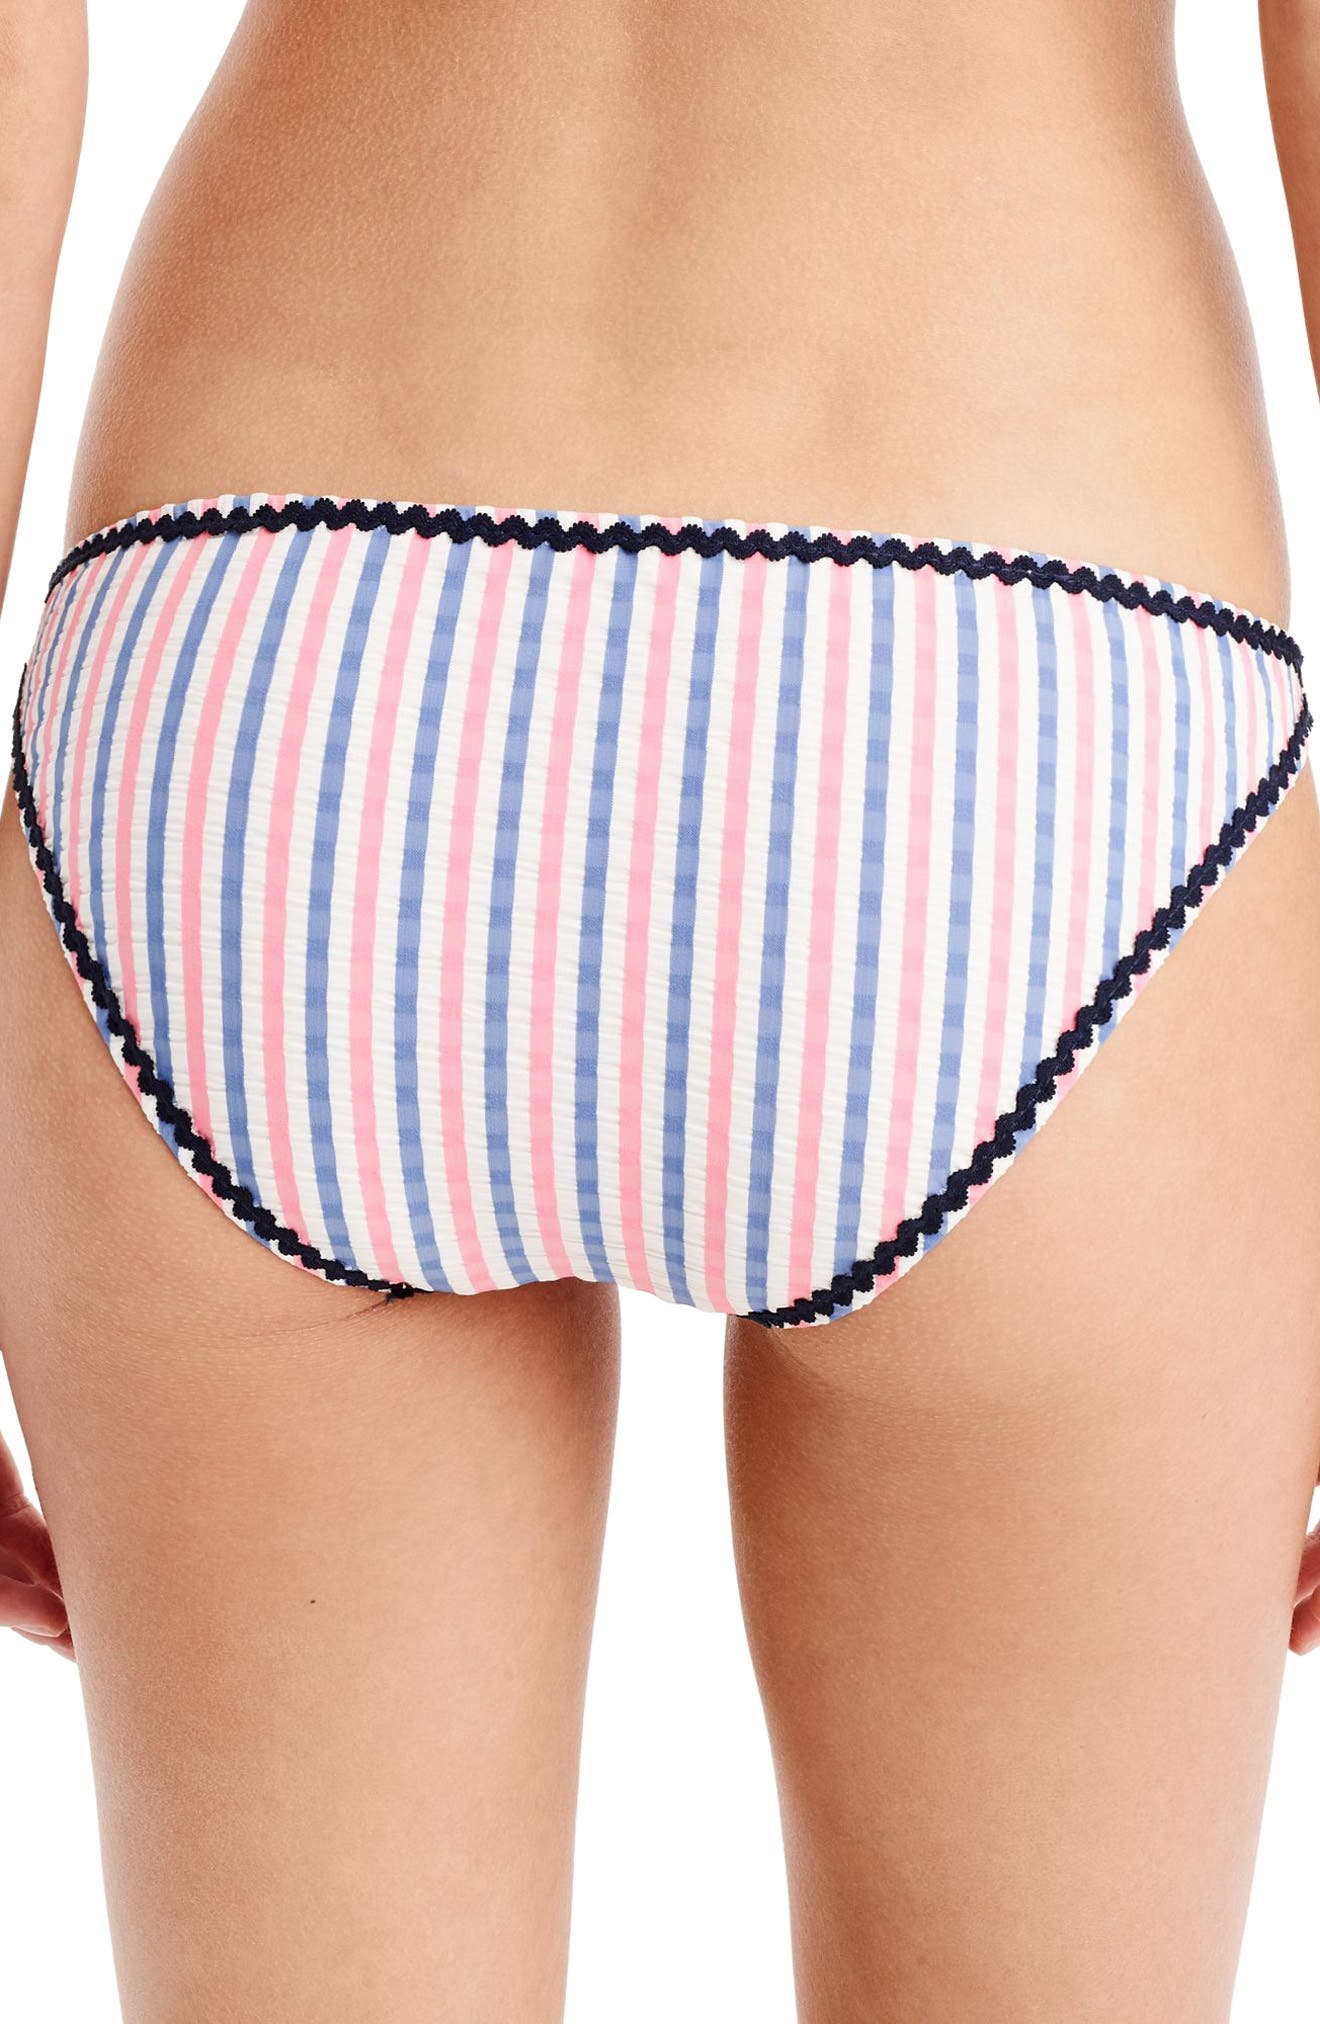 Surf Hipster Bikini Bottoms,                             Alternate thumbnail 2, color,                             White/ Blue/ Pink